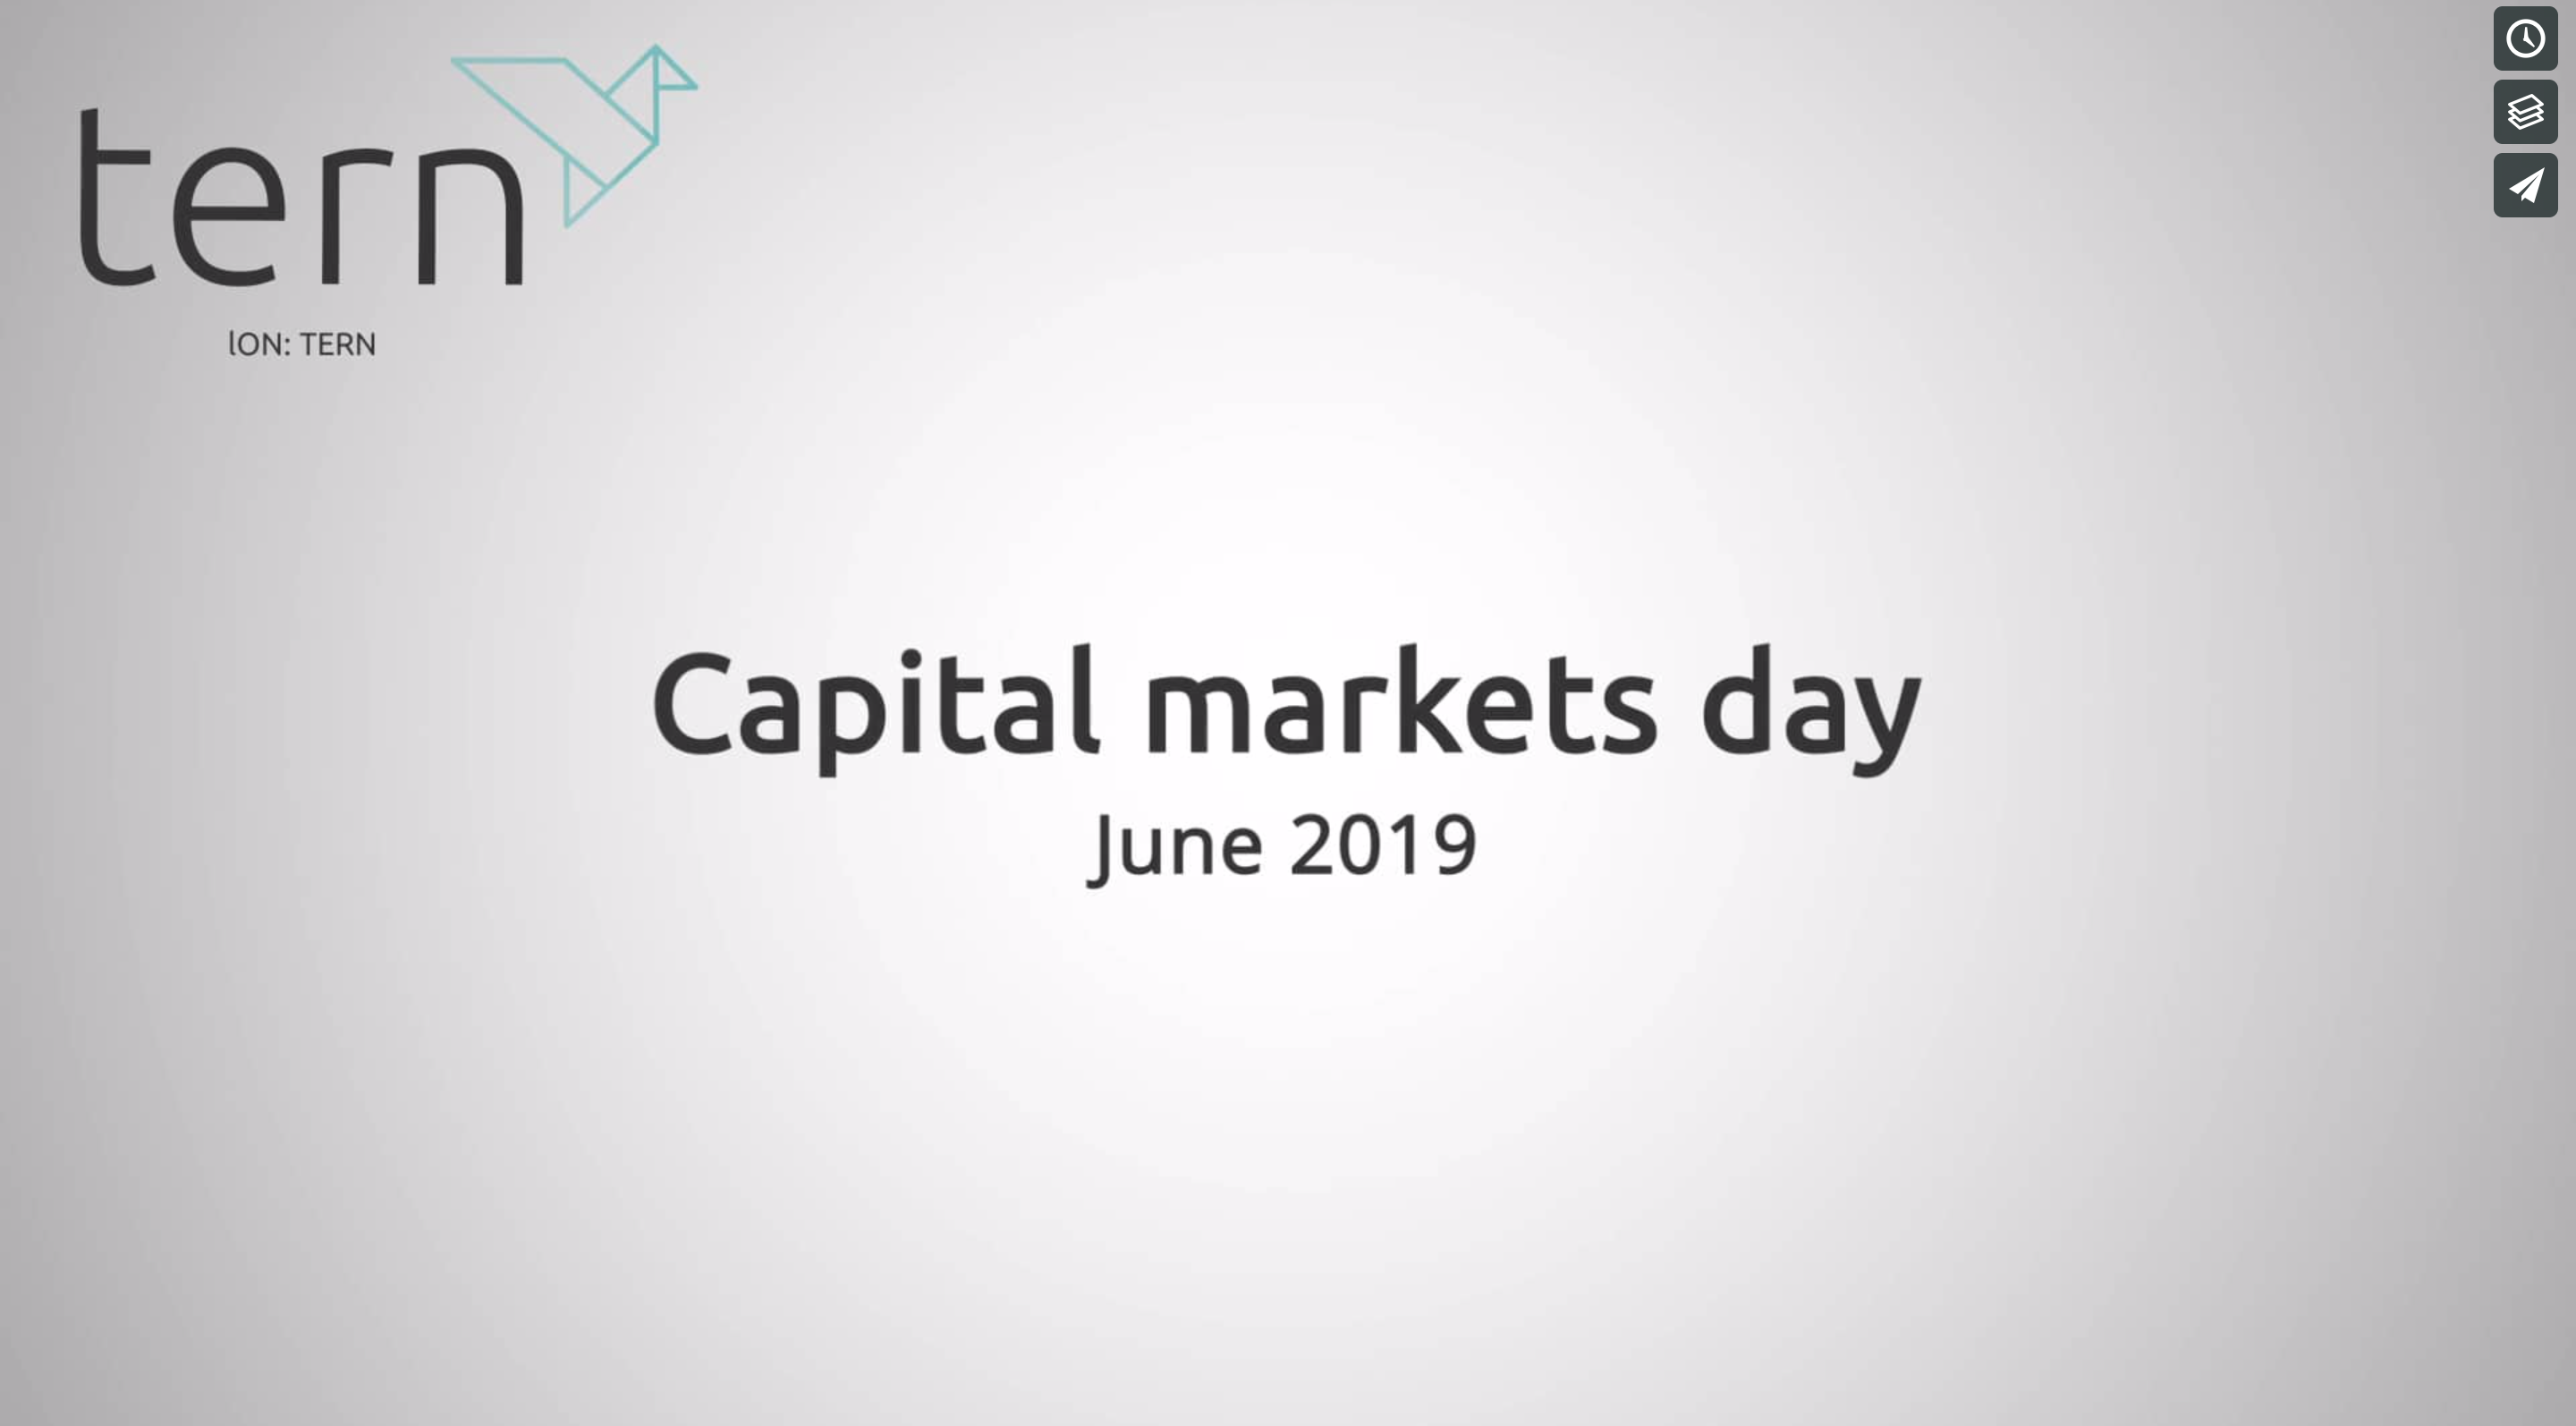 Tern capital markets day